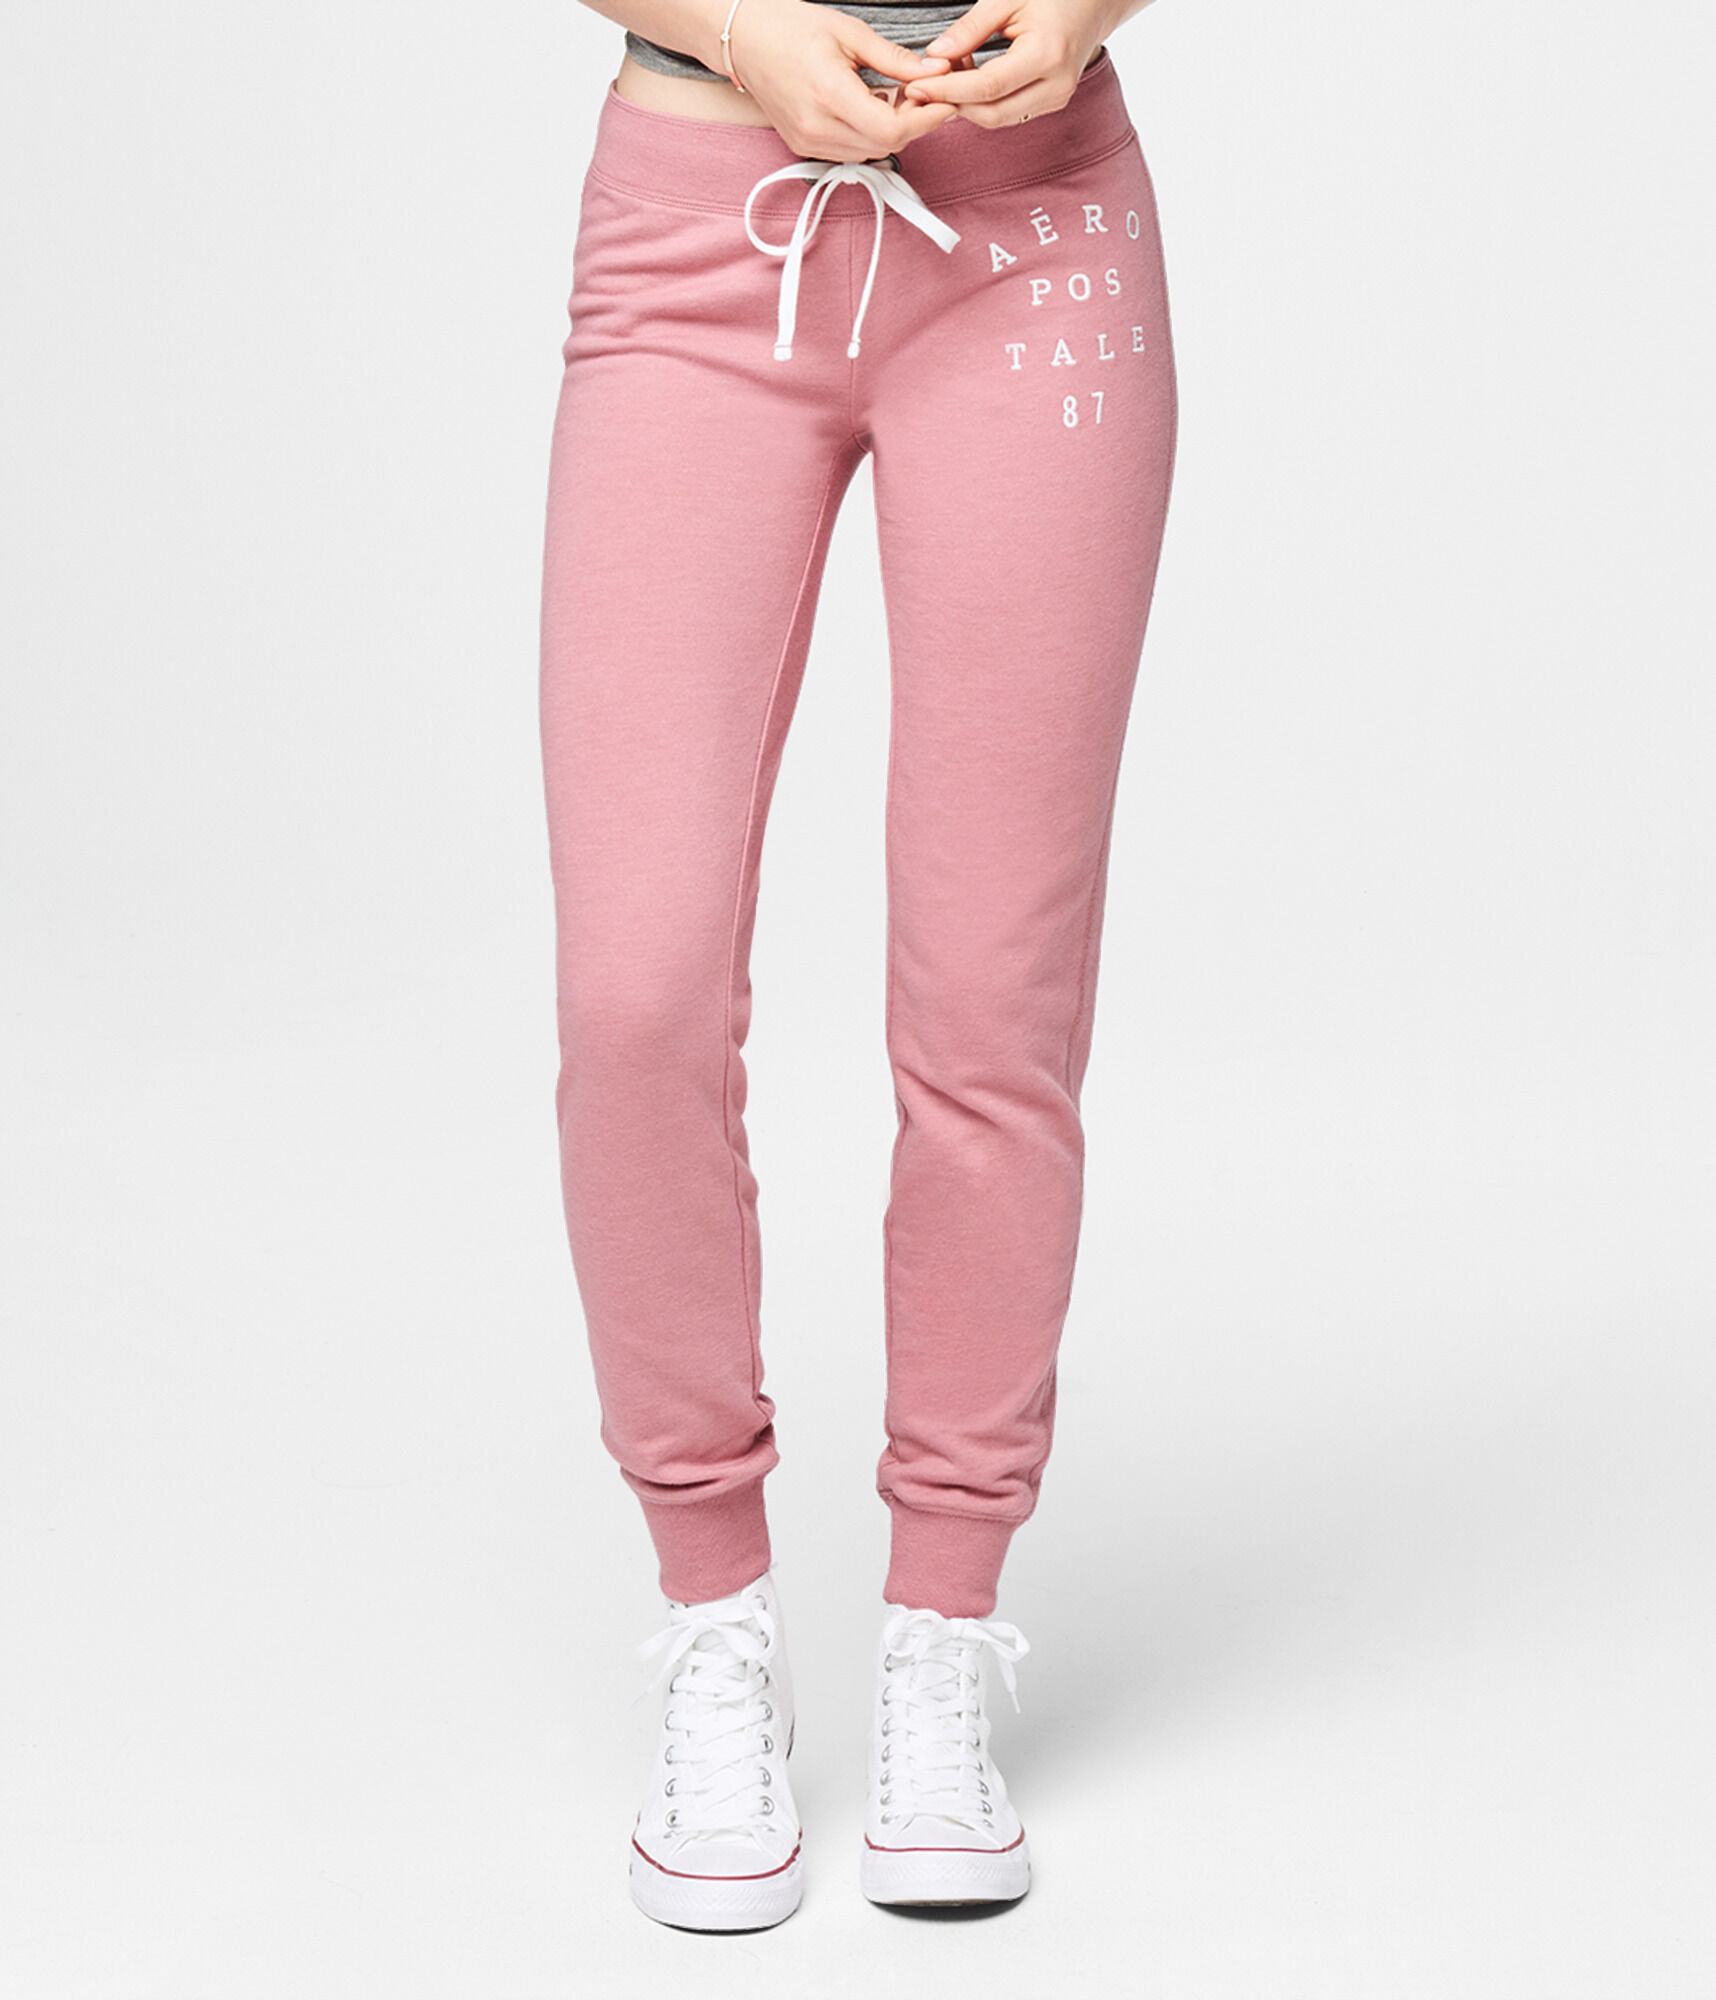 Buy Boyfriend Aeropostale sweatpants pictures trends